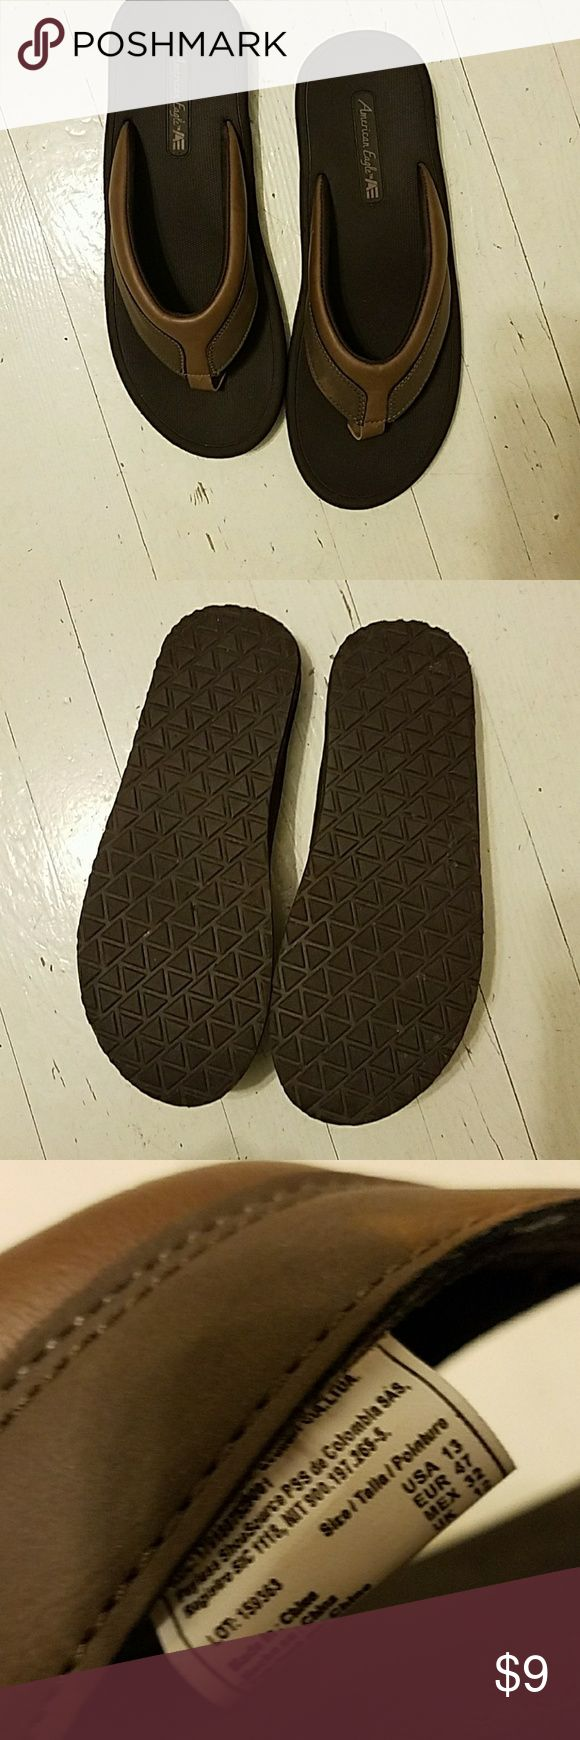 American Eagle AE men's flip flops worn one time size 13 American Eagle by Payless Shoes Sandals & Flip-Flops